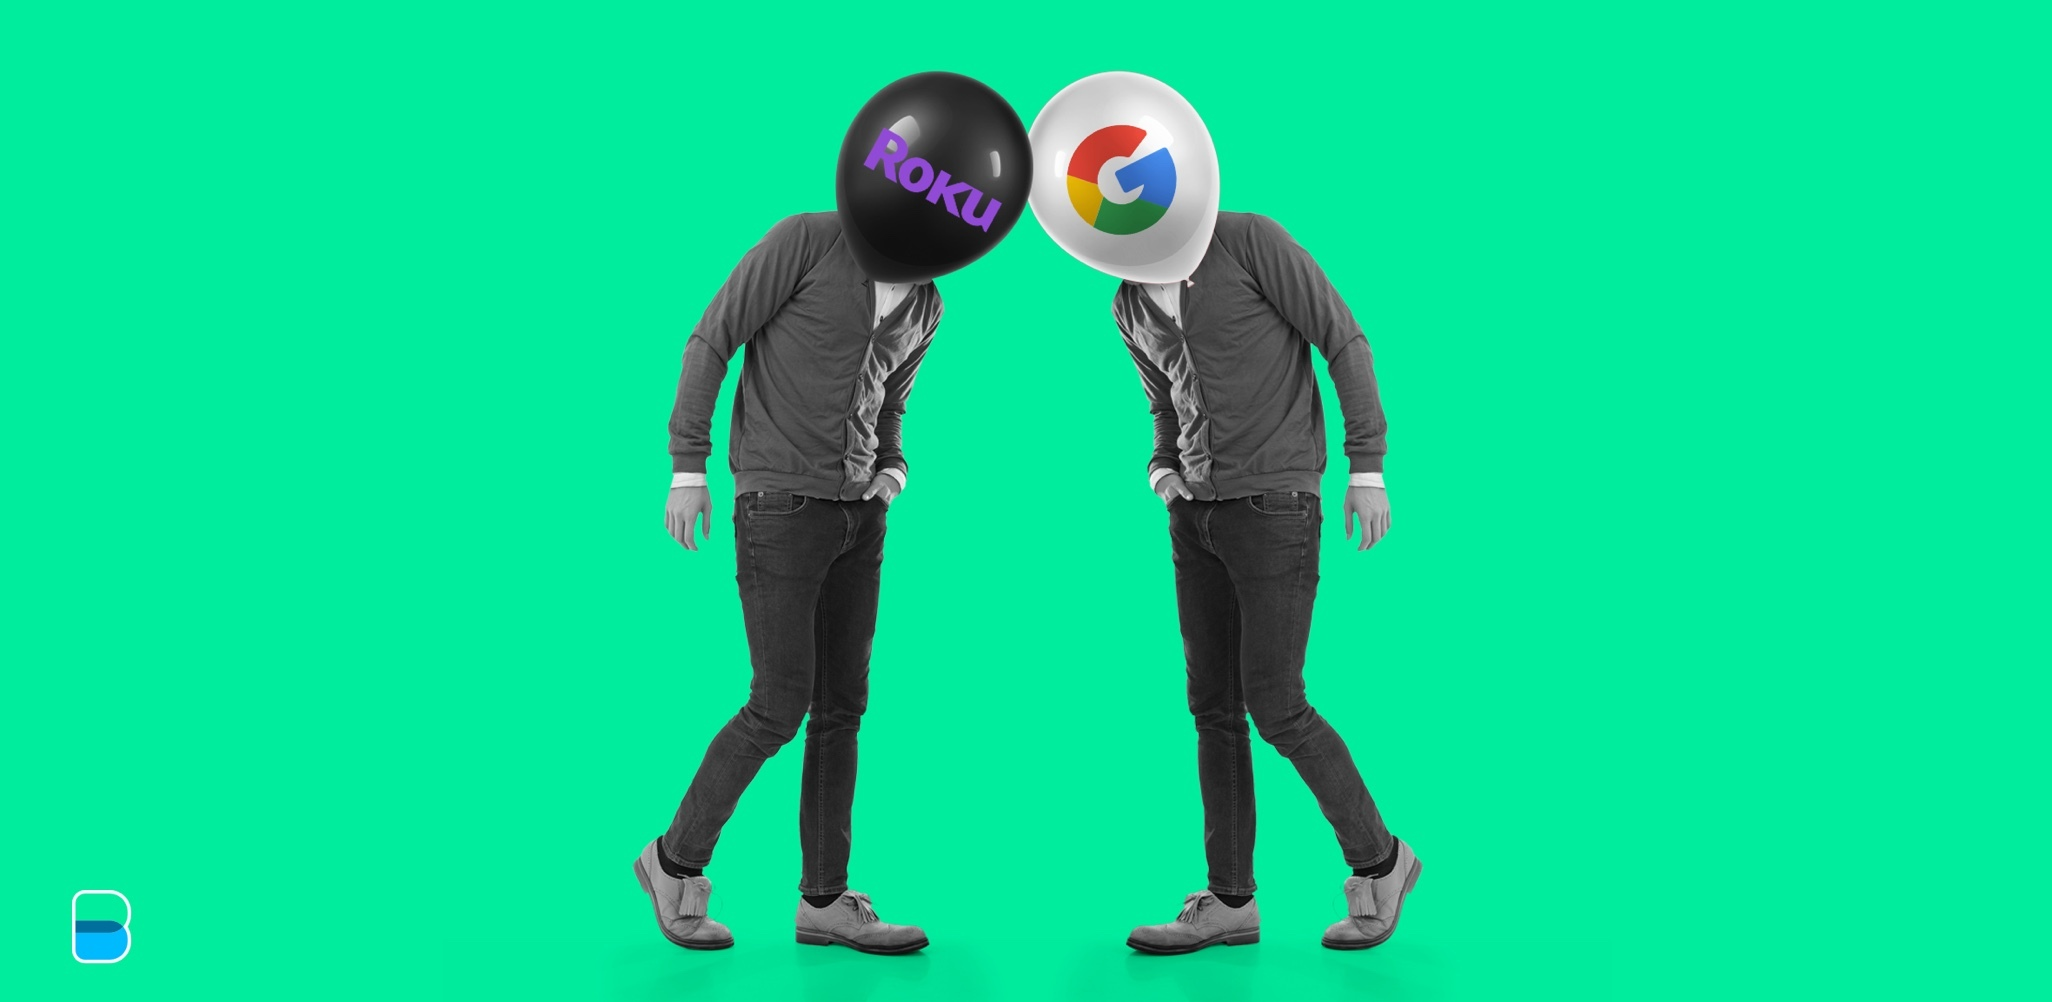 Roku and Google butt heads